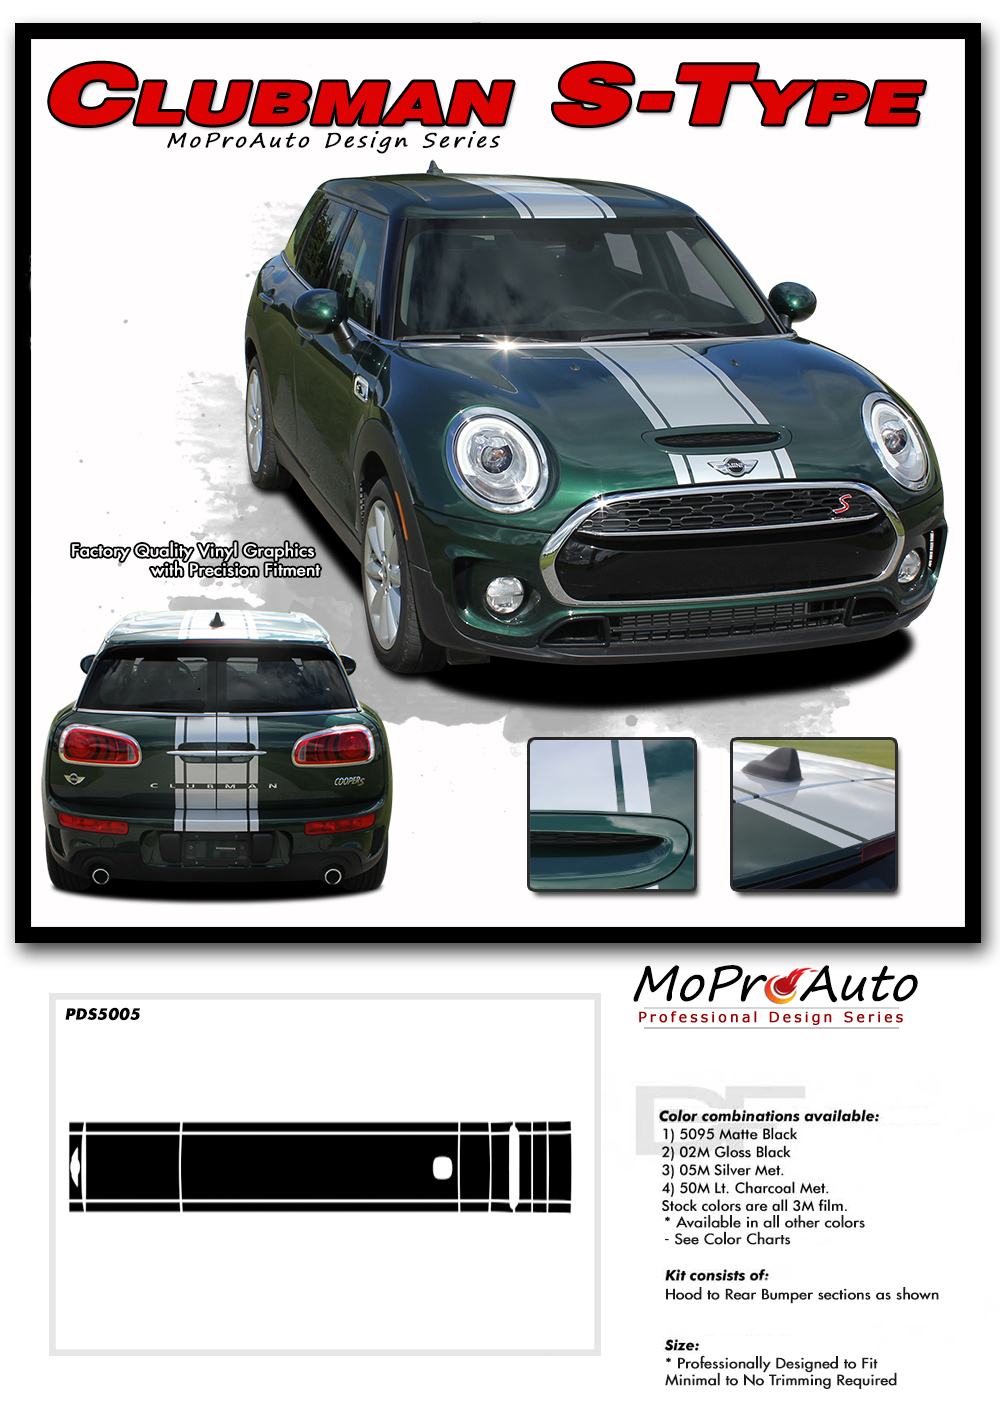 Mini Cooper CLUBMAN S-TYPE HOOD STRIPE Vinyl Graphics, Stripes and Decals Set